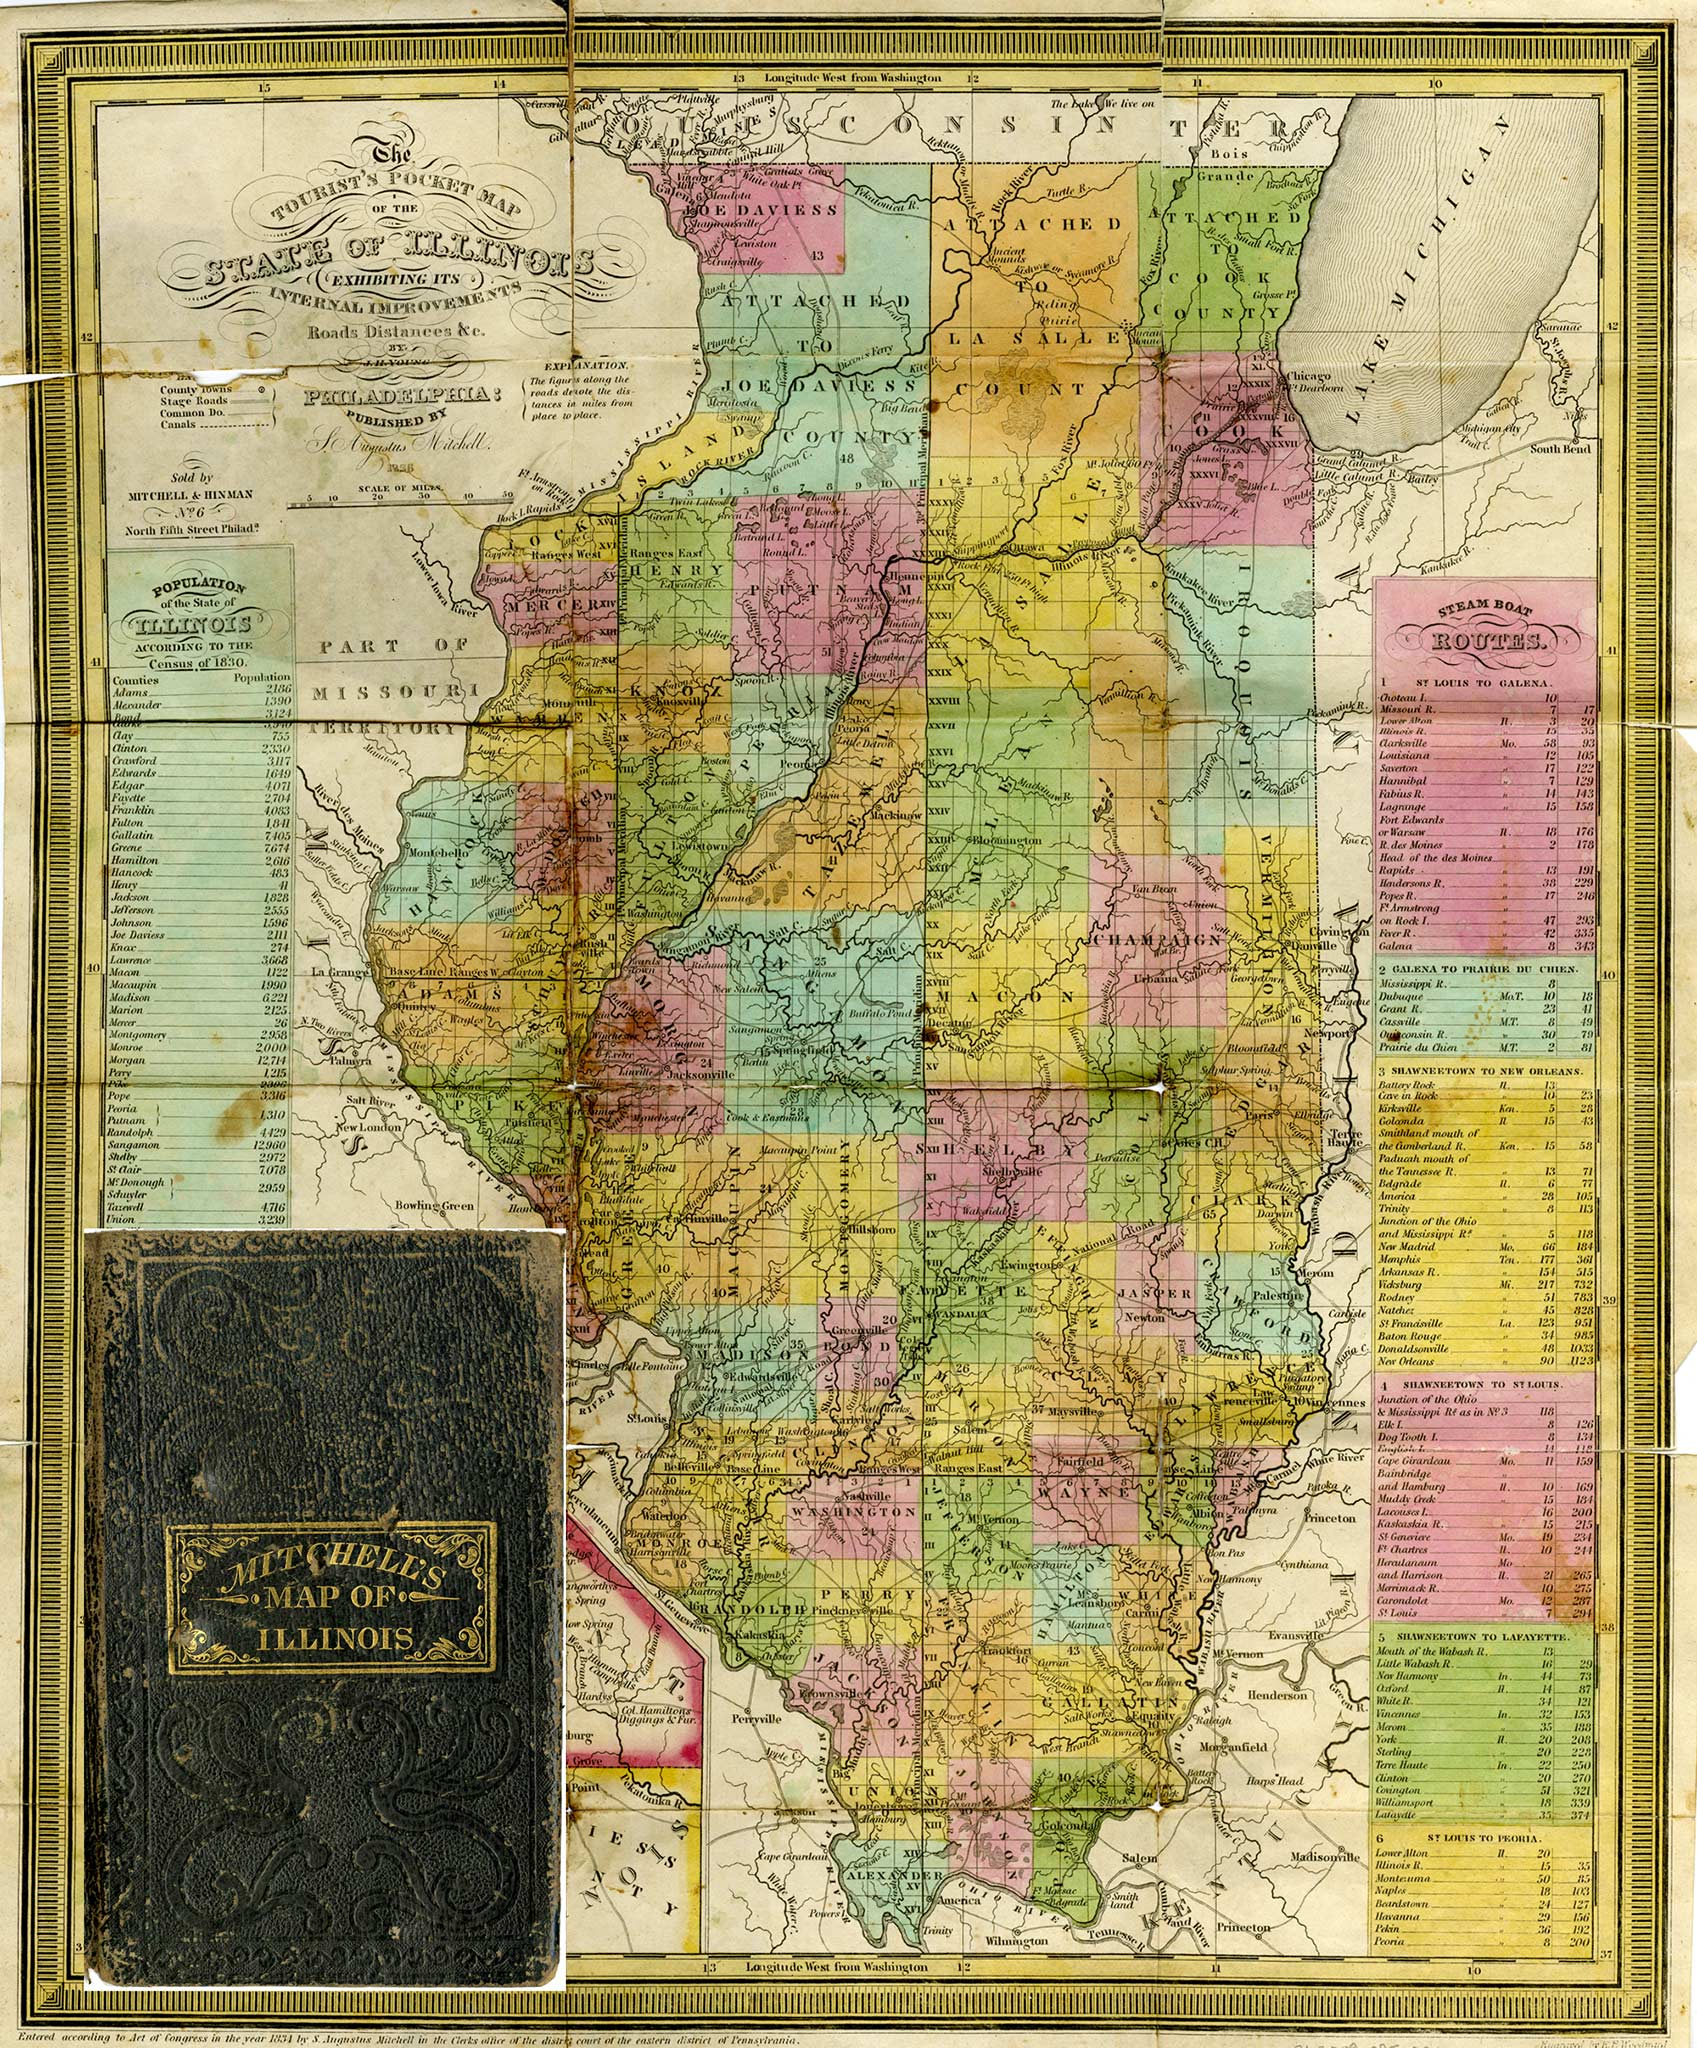 The Tourist's Pocket Map of the State of Illinois, 1836 71200908520652